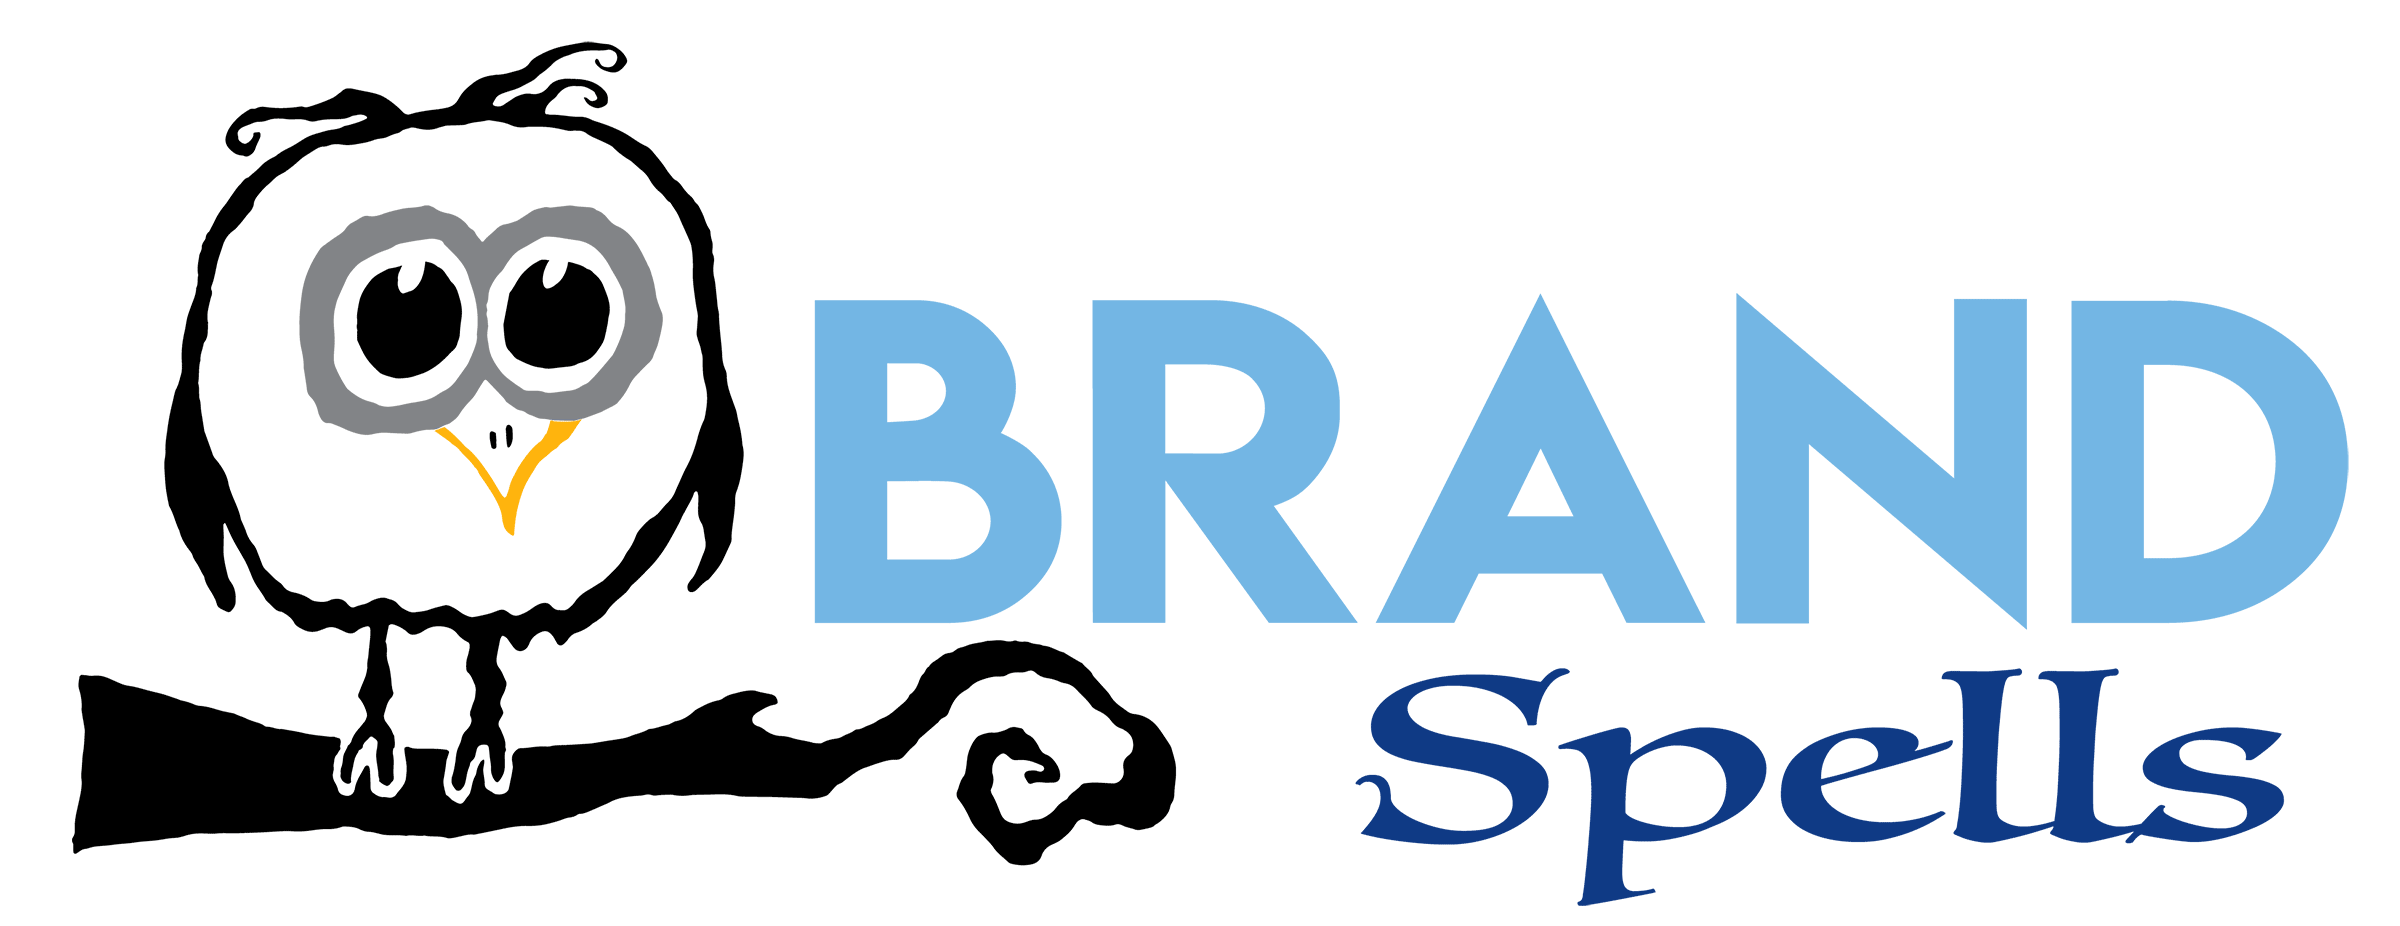 Brand Spells is a Columbia, South Carolina Advertising Agency